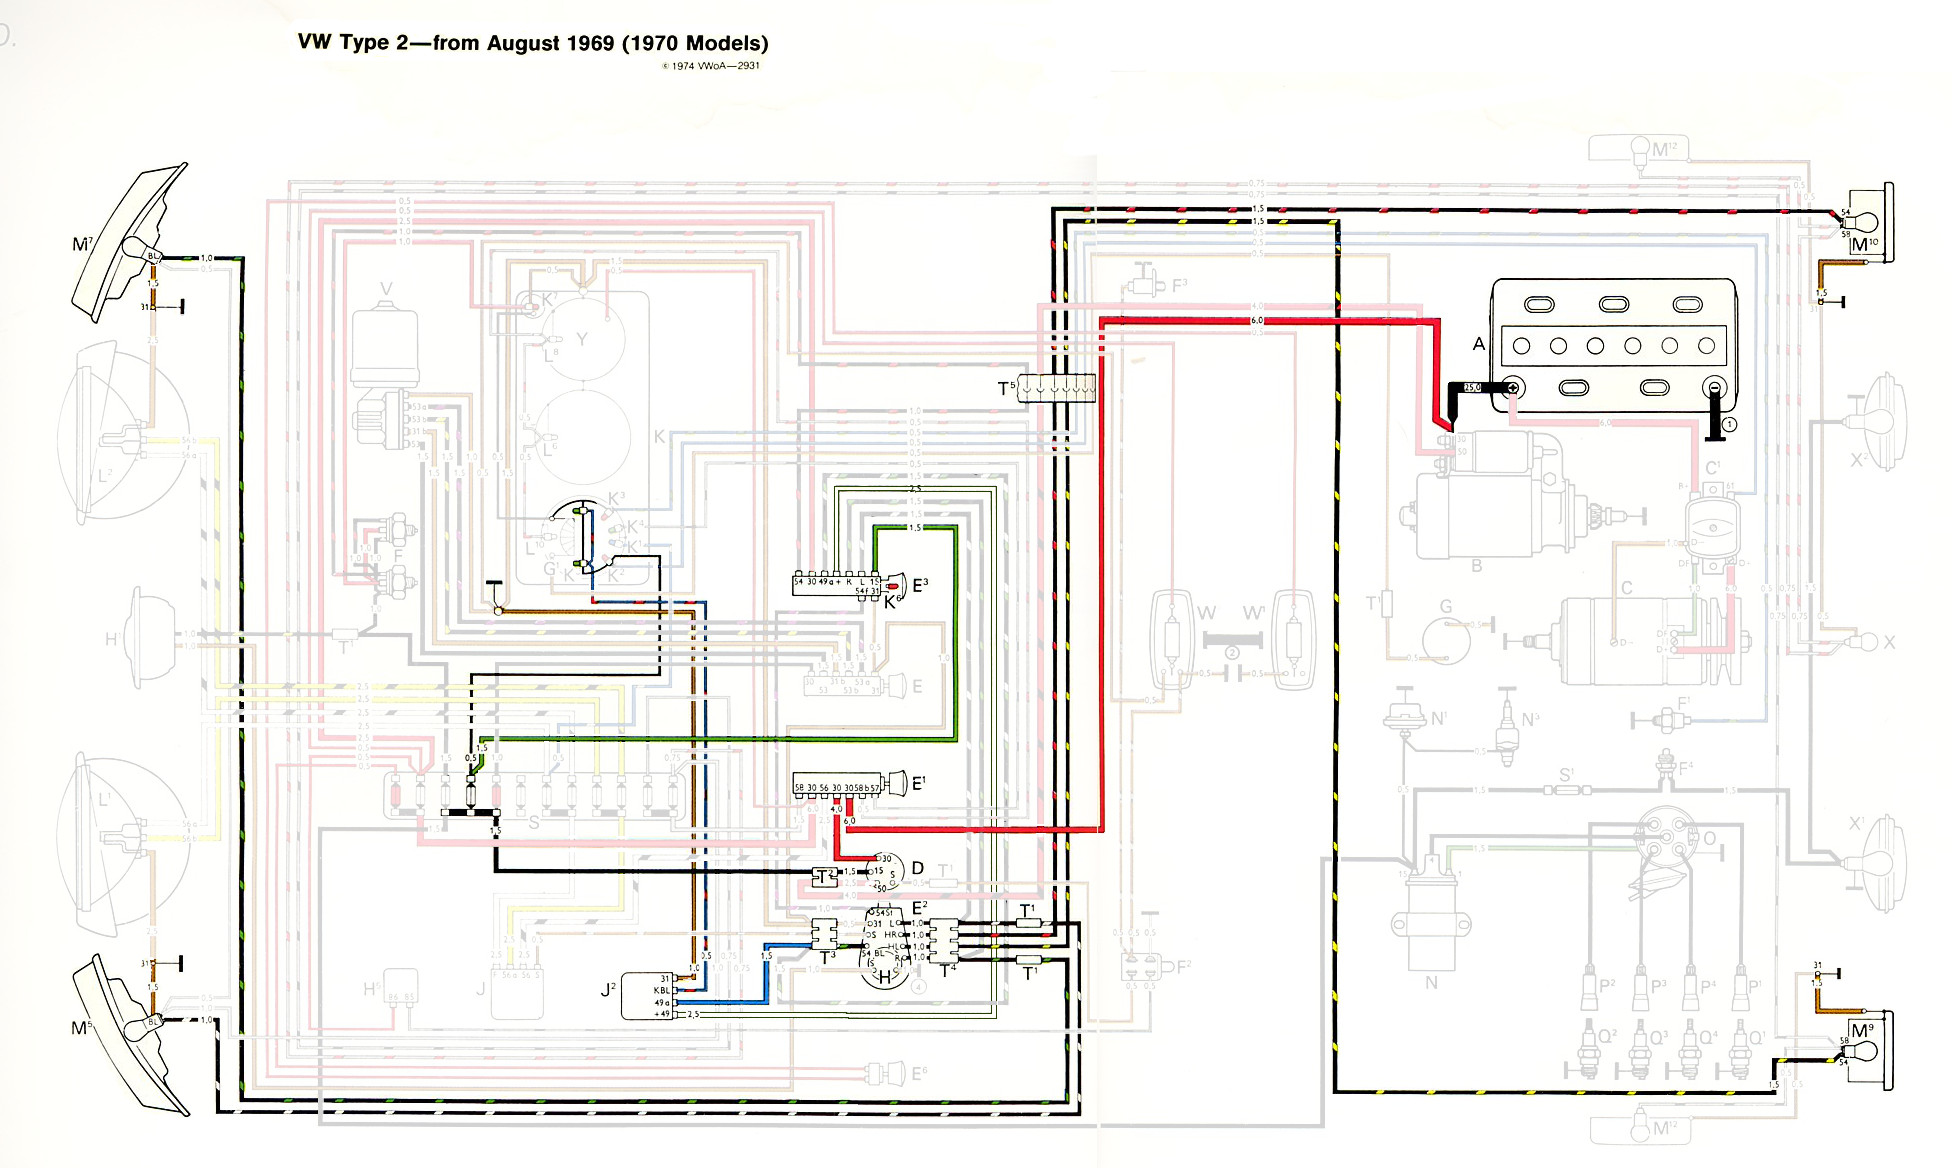 1970bus_signals 1970 vw beetle wiring diagram 1969 vw beetle turn signal wiring 1971 vw bus wiring diagram at bakdesigns.co